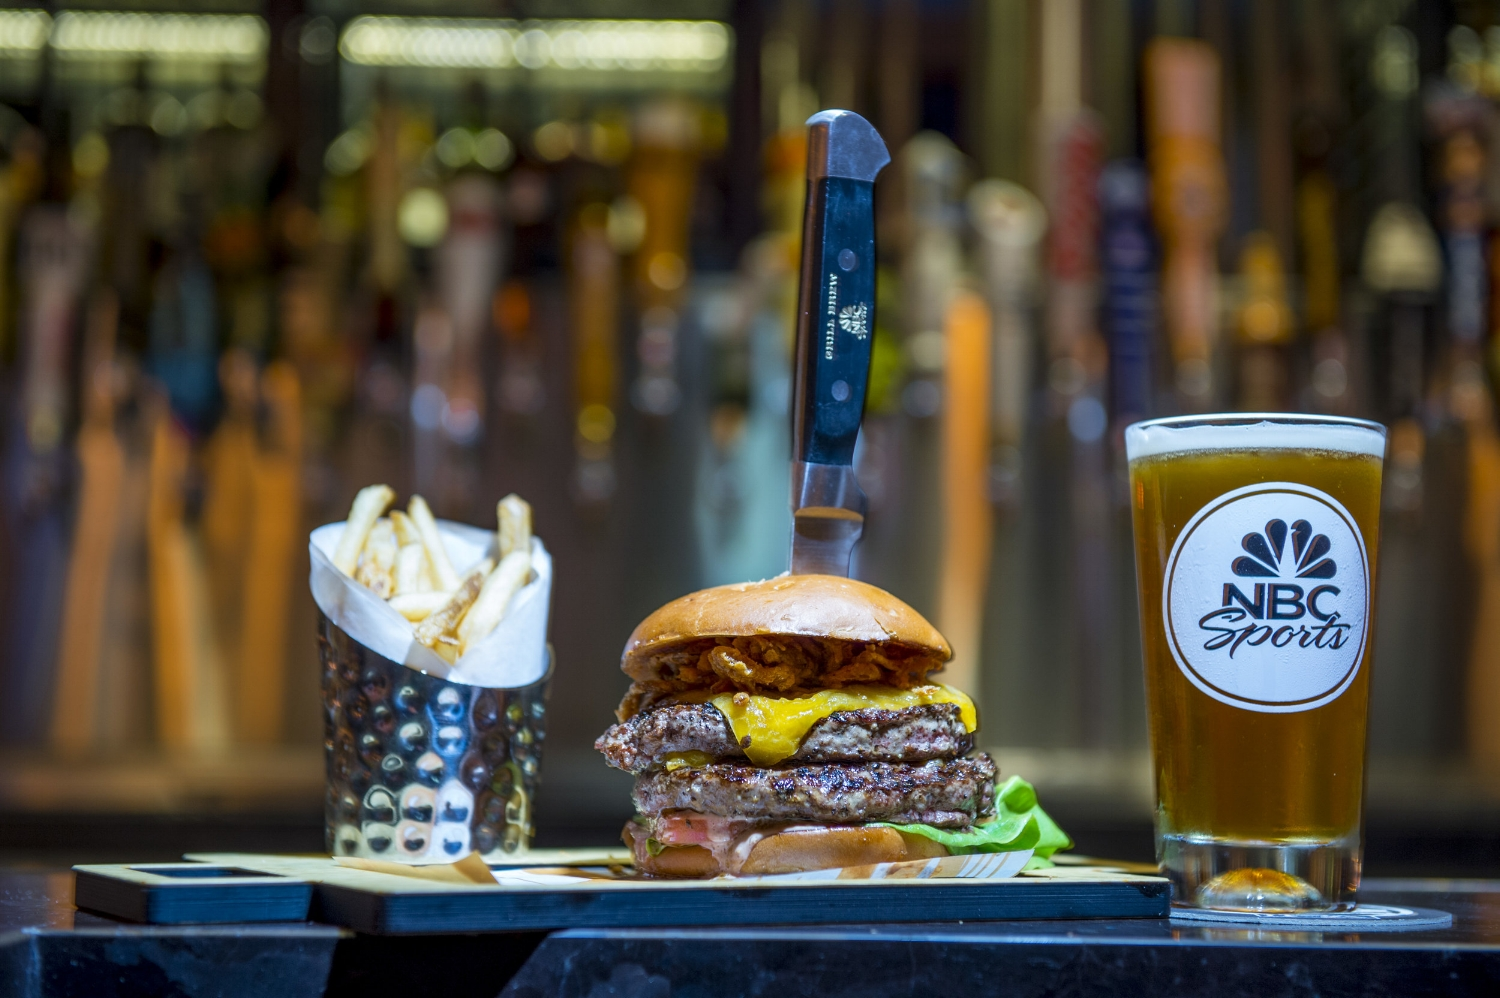 Grand Slam Burger, Fries, and Beer from NBC Sports Grill and Brew.Image credit: Universal Orlando Resort.